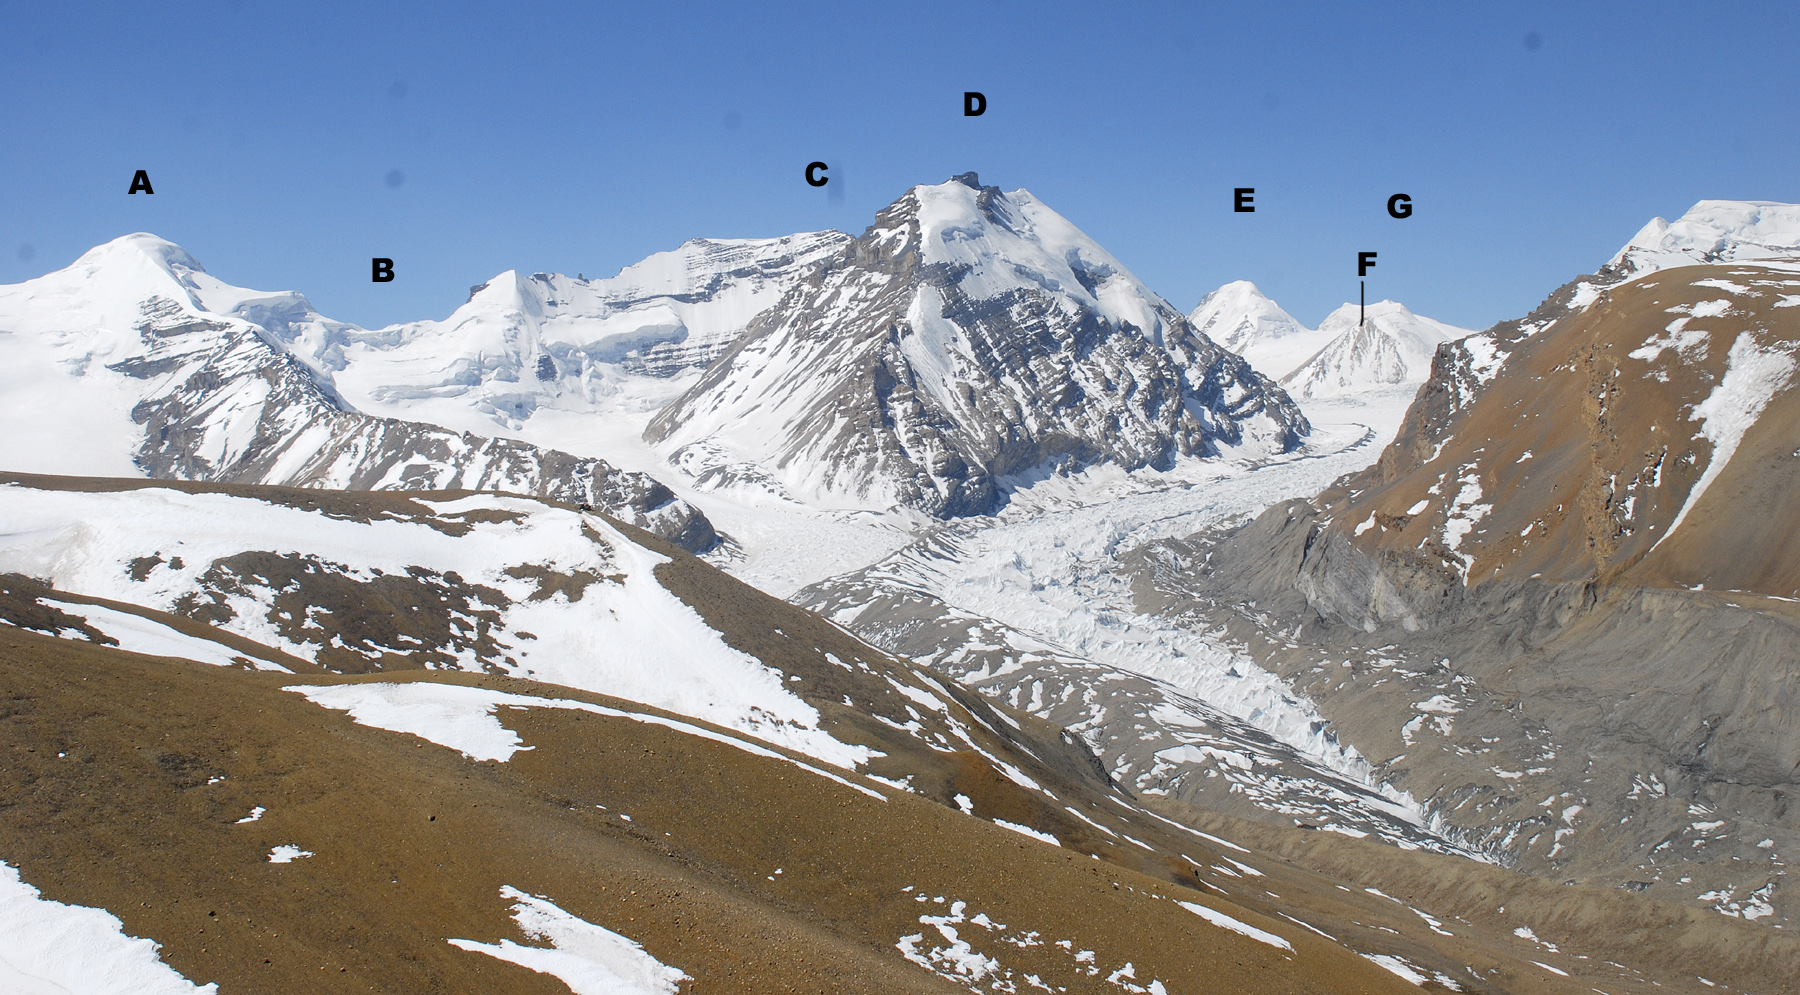 Peaks west of Bhrikuti seen from the northeast. (A) Shelka Kangri (6,358m). (B) 6,118m pass. (C) Kumlun Himal (6,365m). (D) Unnamed (two summits; Northeast, 6,378m, and Southwest 6,380m. This is more a shoulder of Kumlun than an separate peak as would appear in this photo. It was attempted from the west by Paulo Grobel, who reports the rock to be atrocious.). (E) Pt. 6,505m. (F) Belvédère d'Alfred (6,226m). (G) Pt 6,420m (possibly climbed by a French ski team).